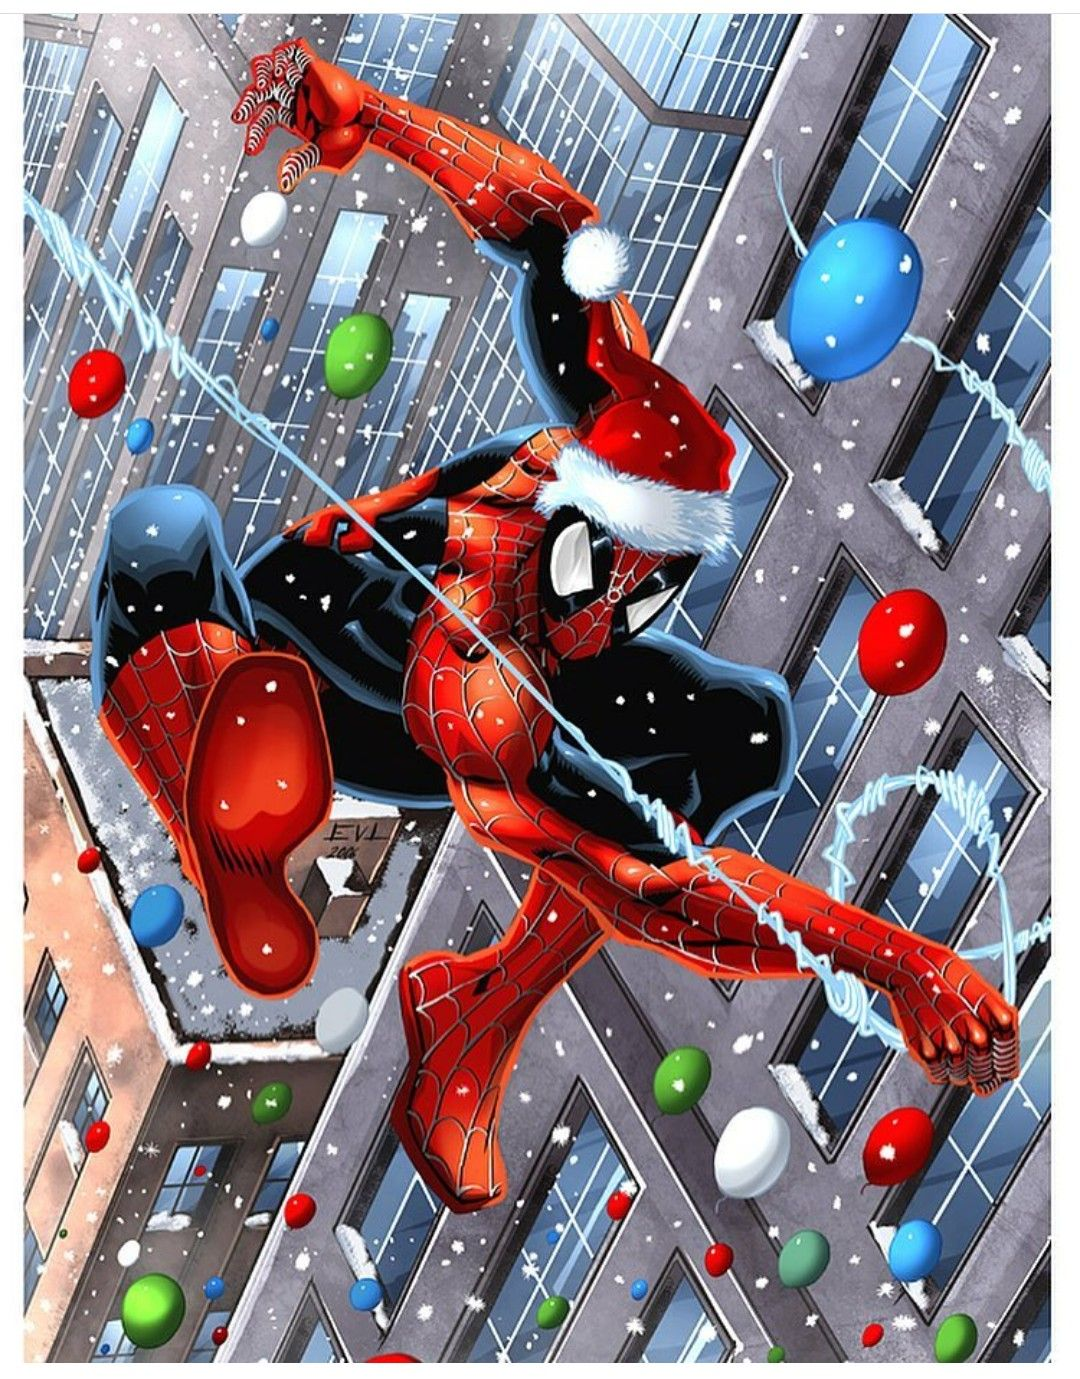 Spiderman Christmas.Merry Christmas Spider Man The Amazing Spider Man